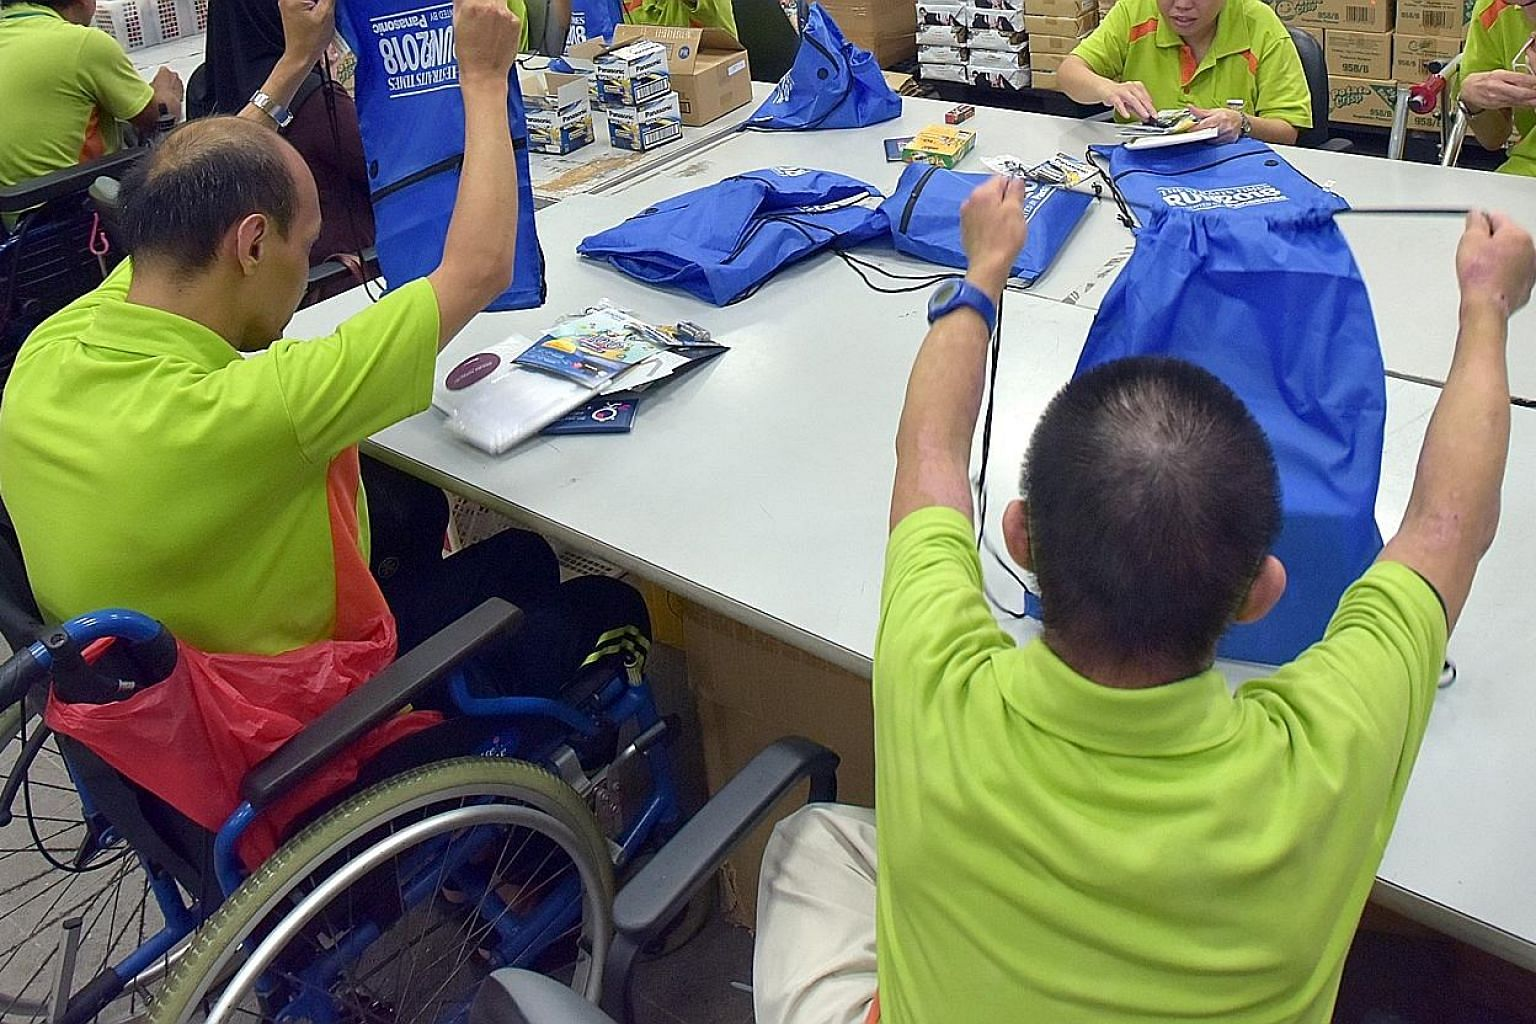 People from SPD, a charity for those with disabilities, packing bags for last year's ST Run. Ms Indranee Rajah said tertiary institutes help students with special needs build up their confidence and independence.